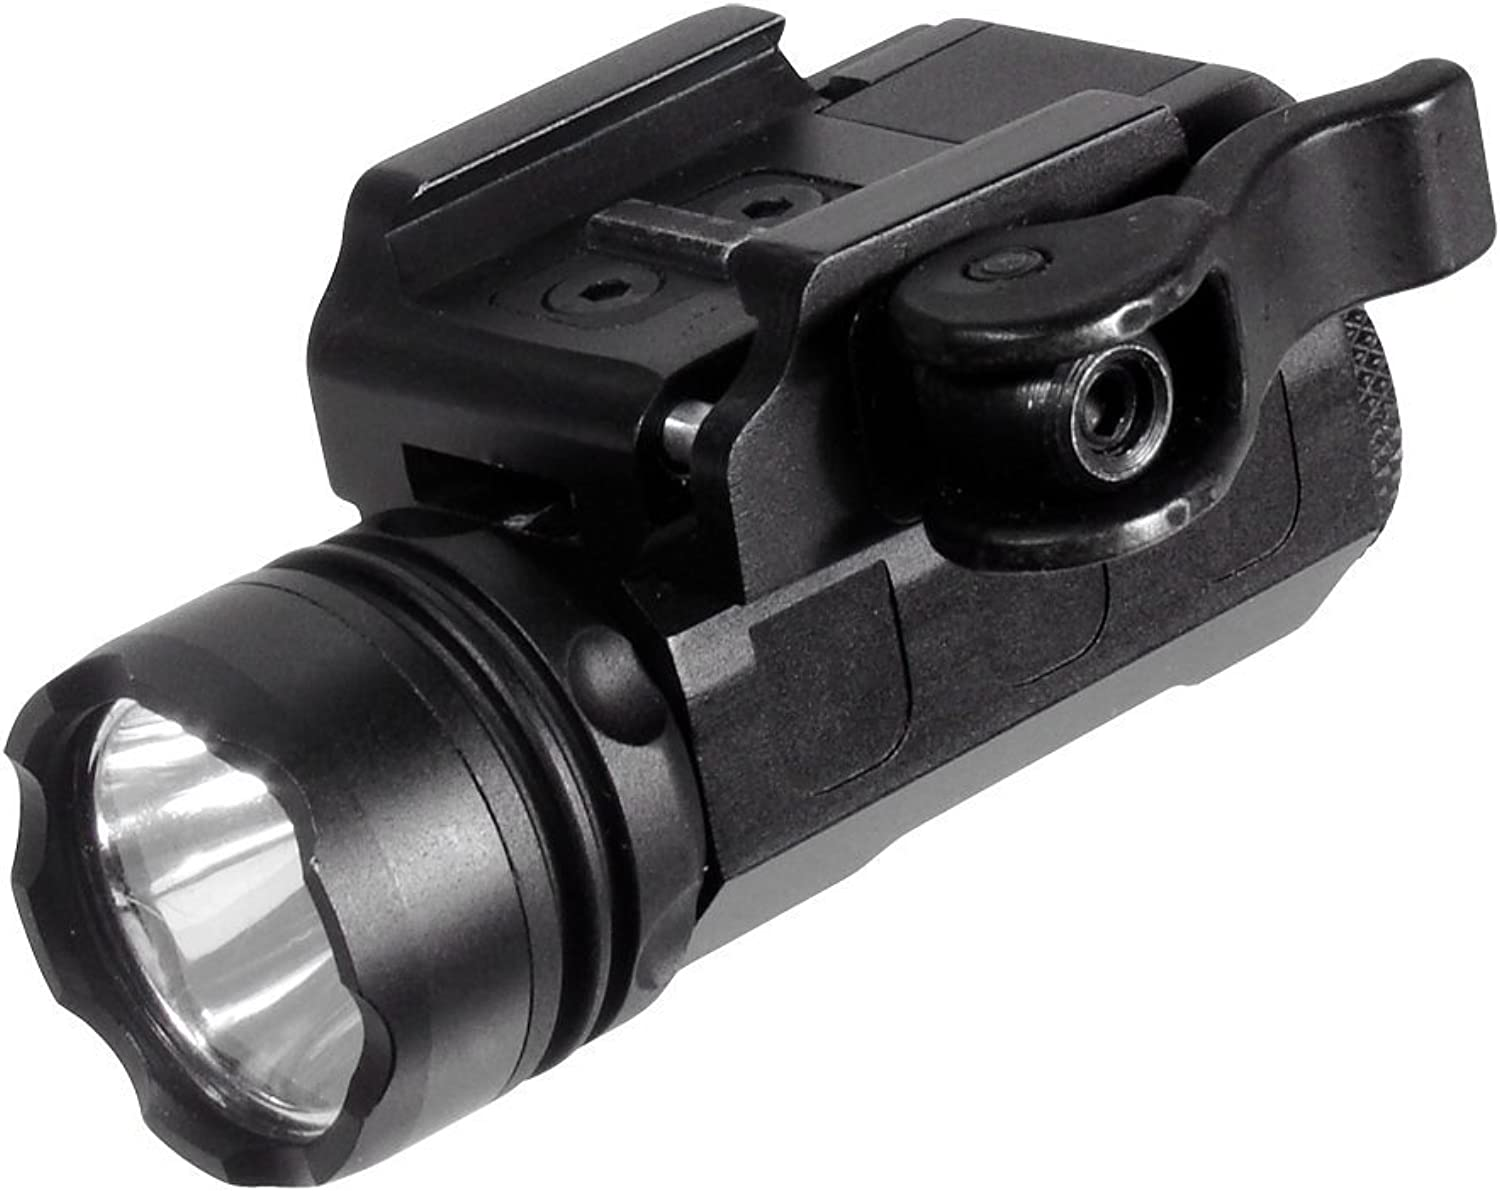 UTG Tactical SuperCompact Pistol Flashlight with 23mm CREE R2 LED and Integral QD Mount, Black